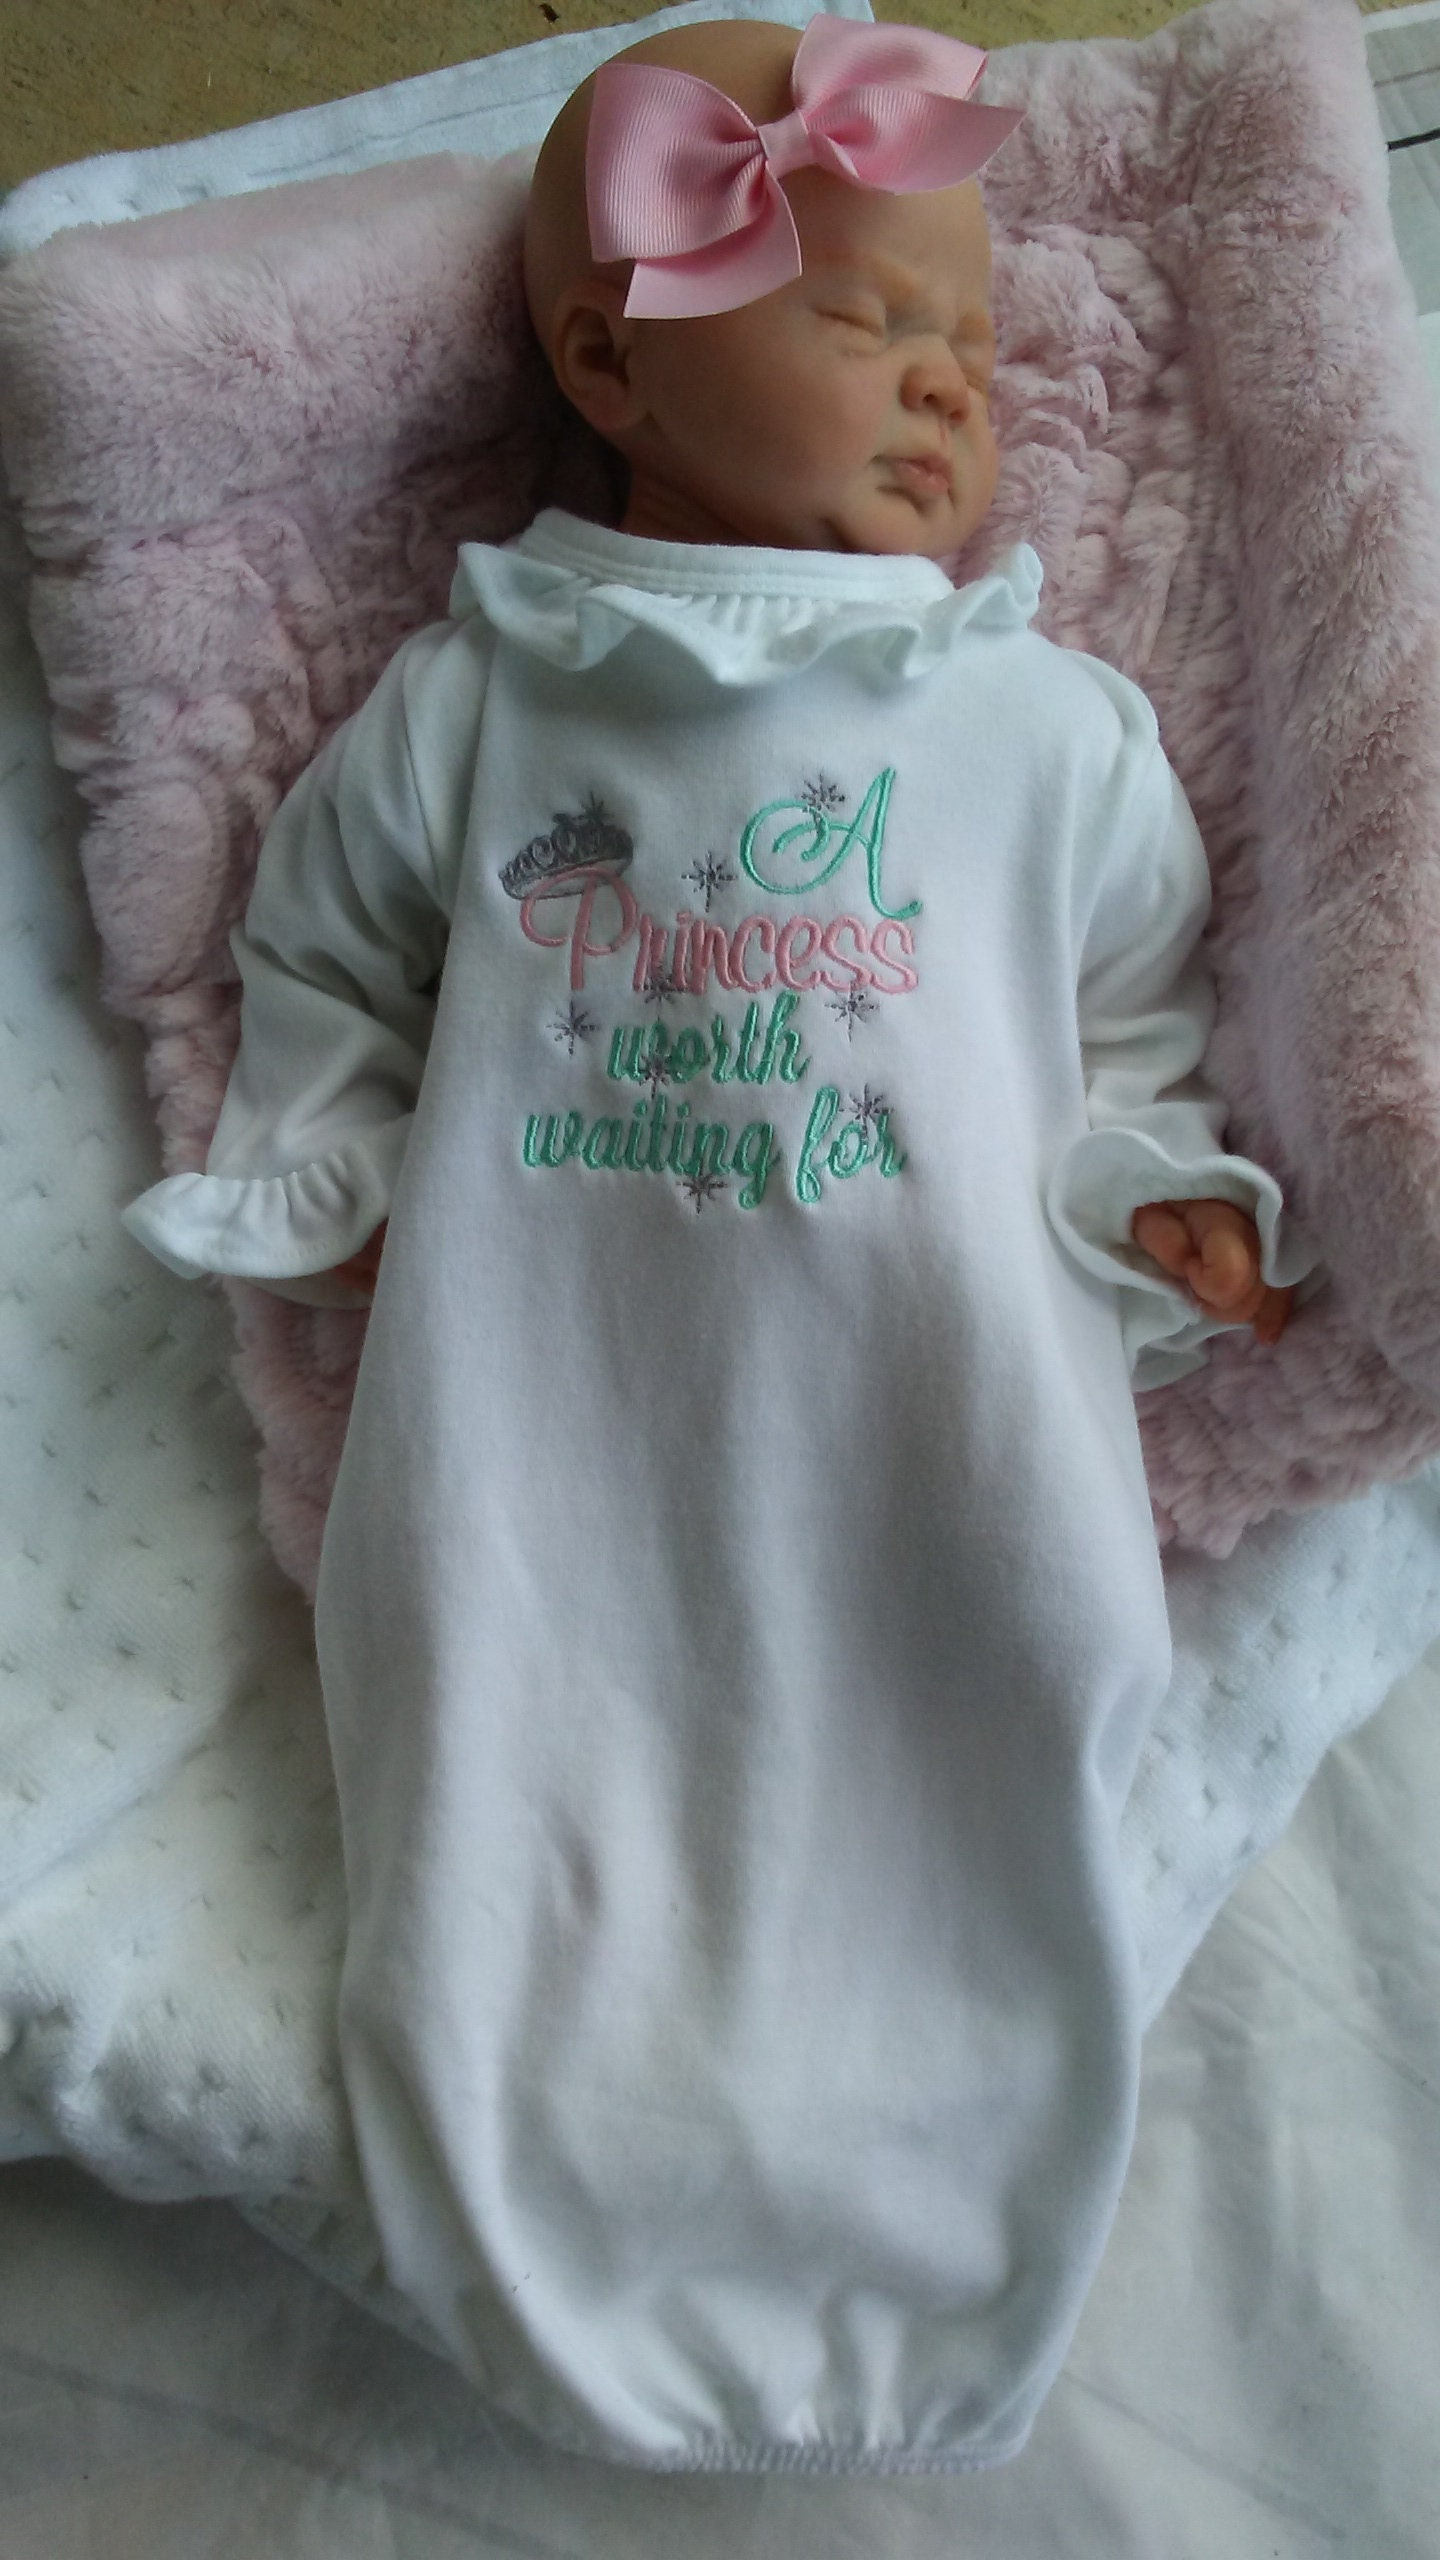 Personalized baby gift girl newborn girl coming home outfit personalized baby gift girl newborn girl coming home outfit personalized baby girl clothes baby clothes infant gown baby outfit pink mint negle